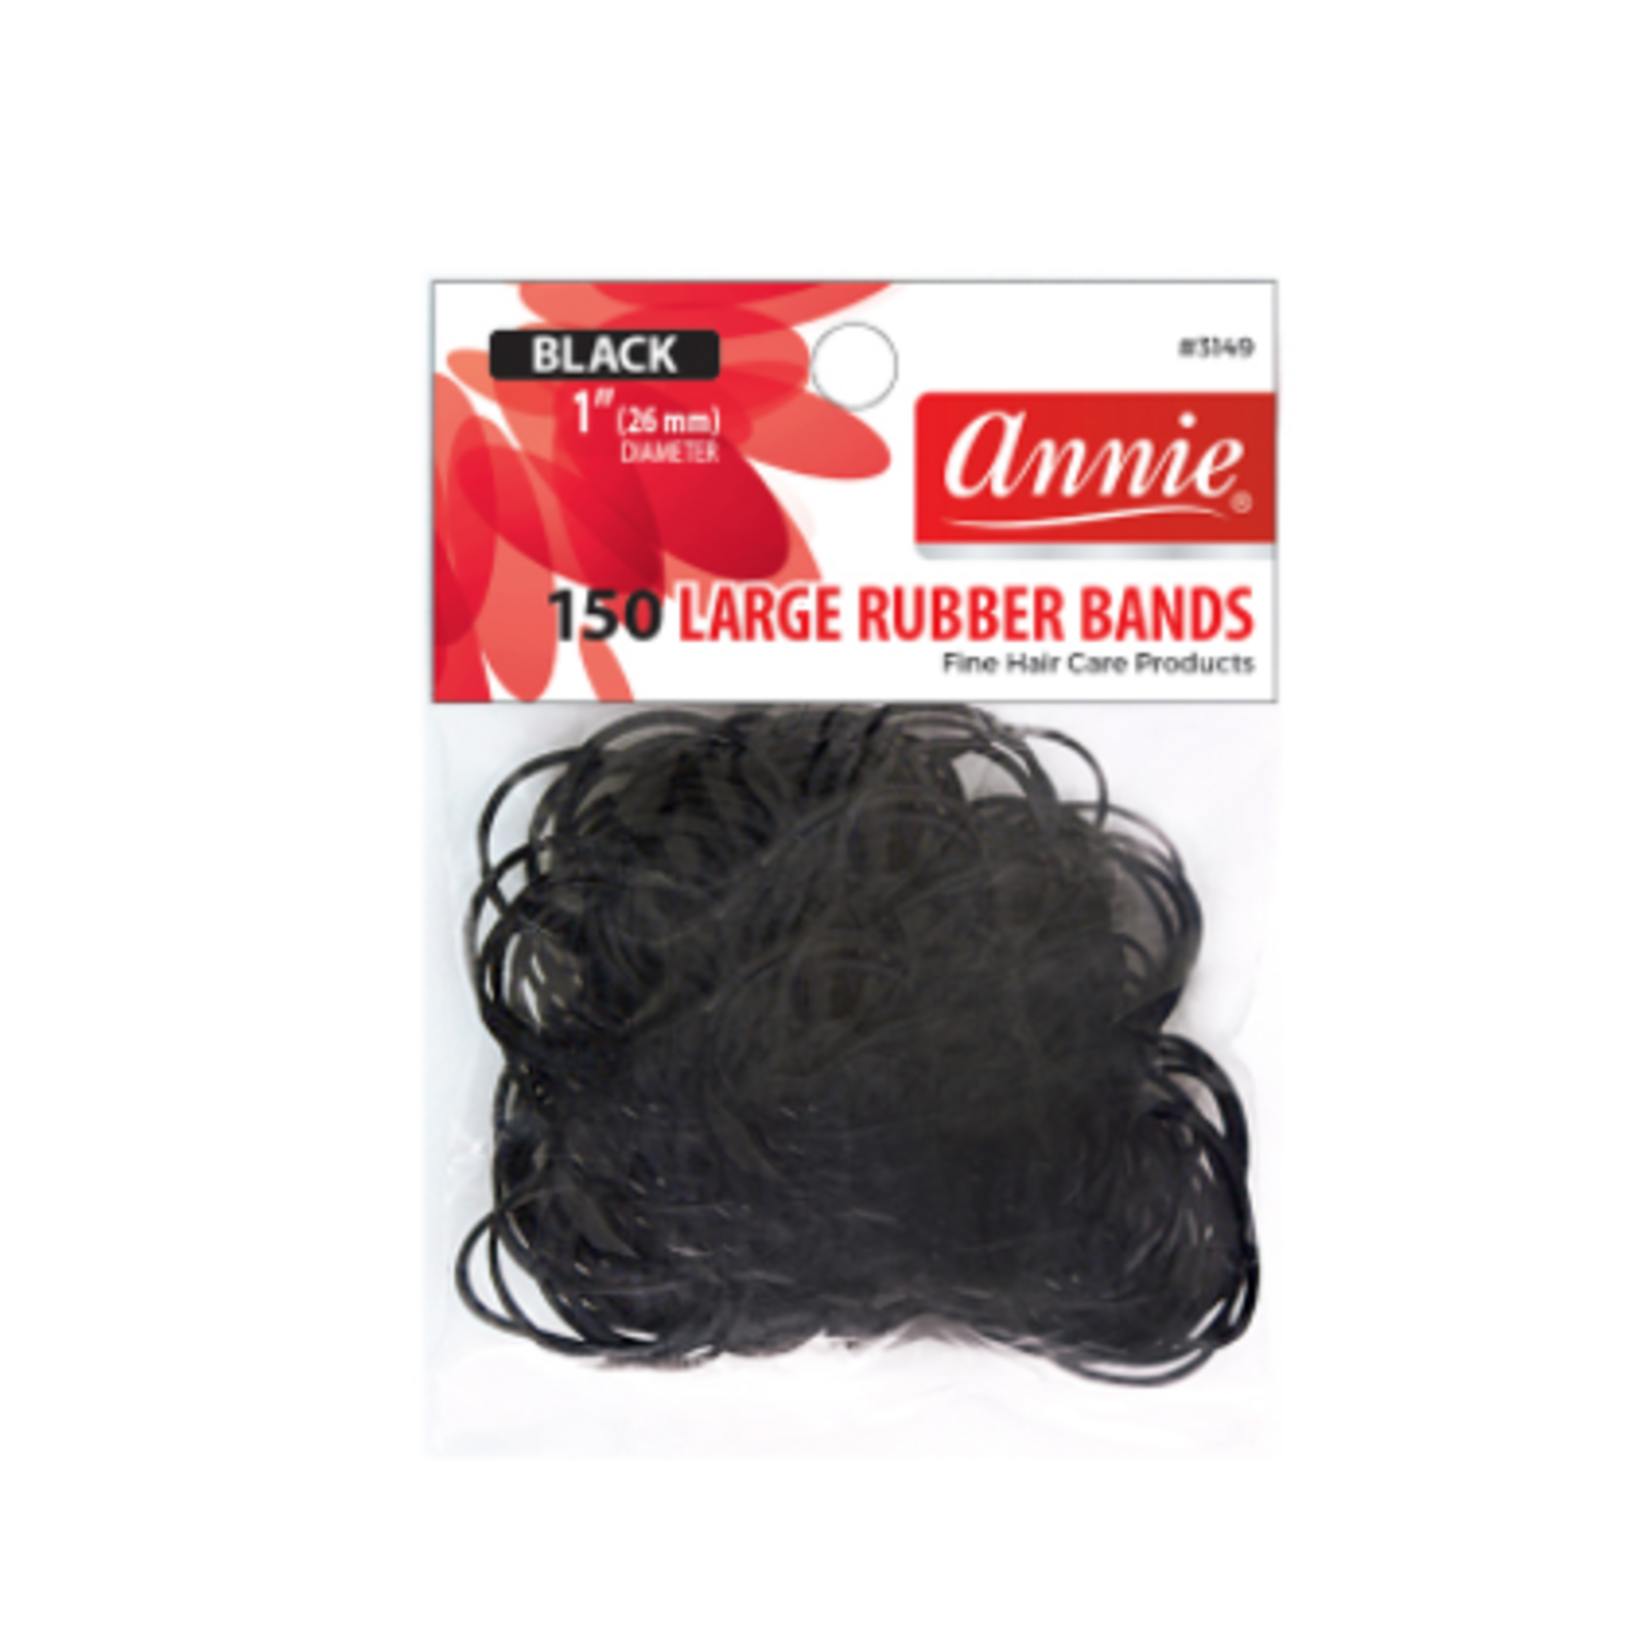 Annie 150 Large Rubber Bands